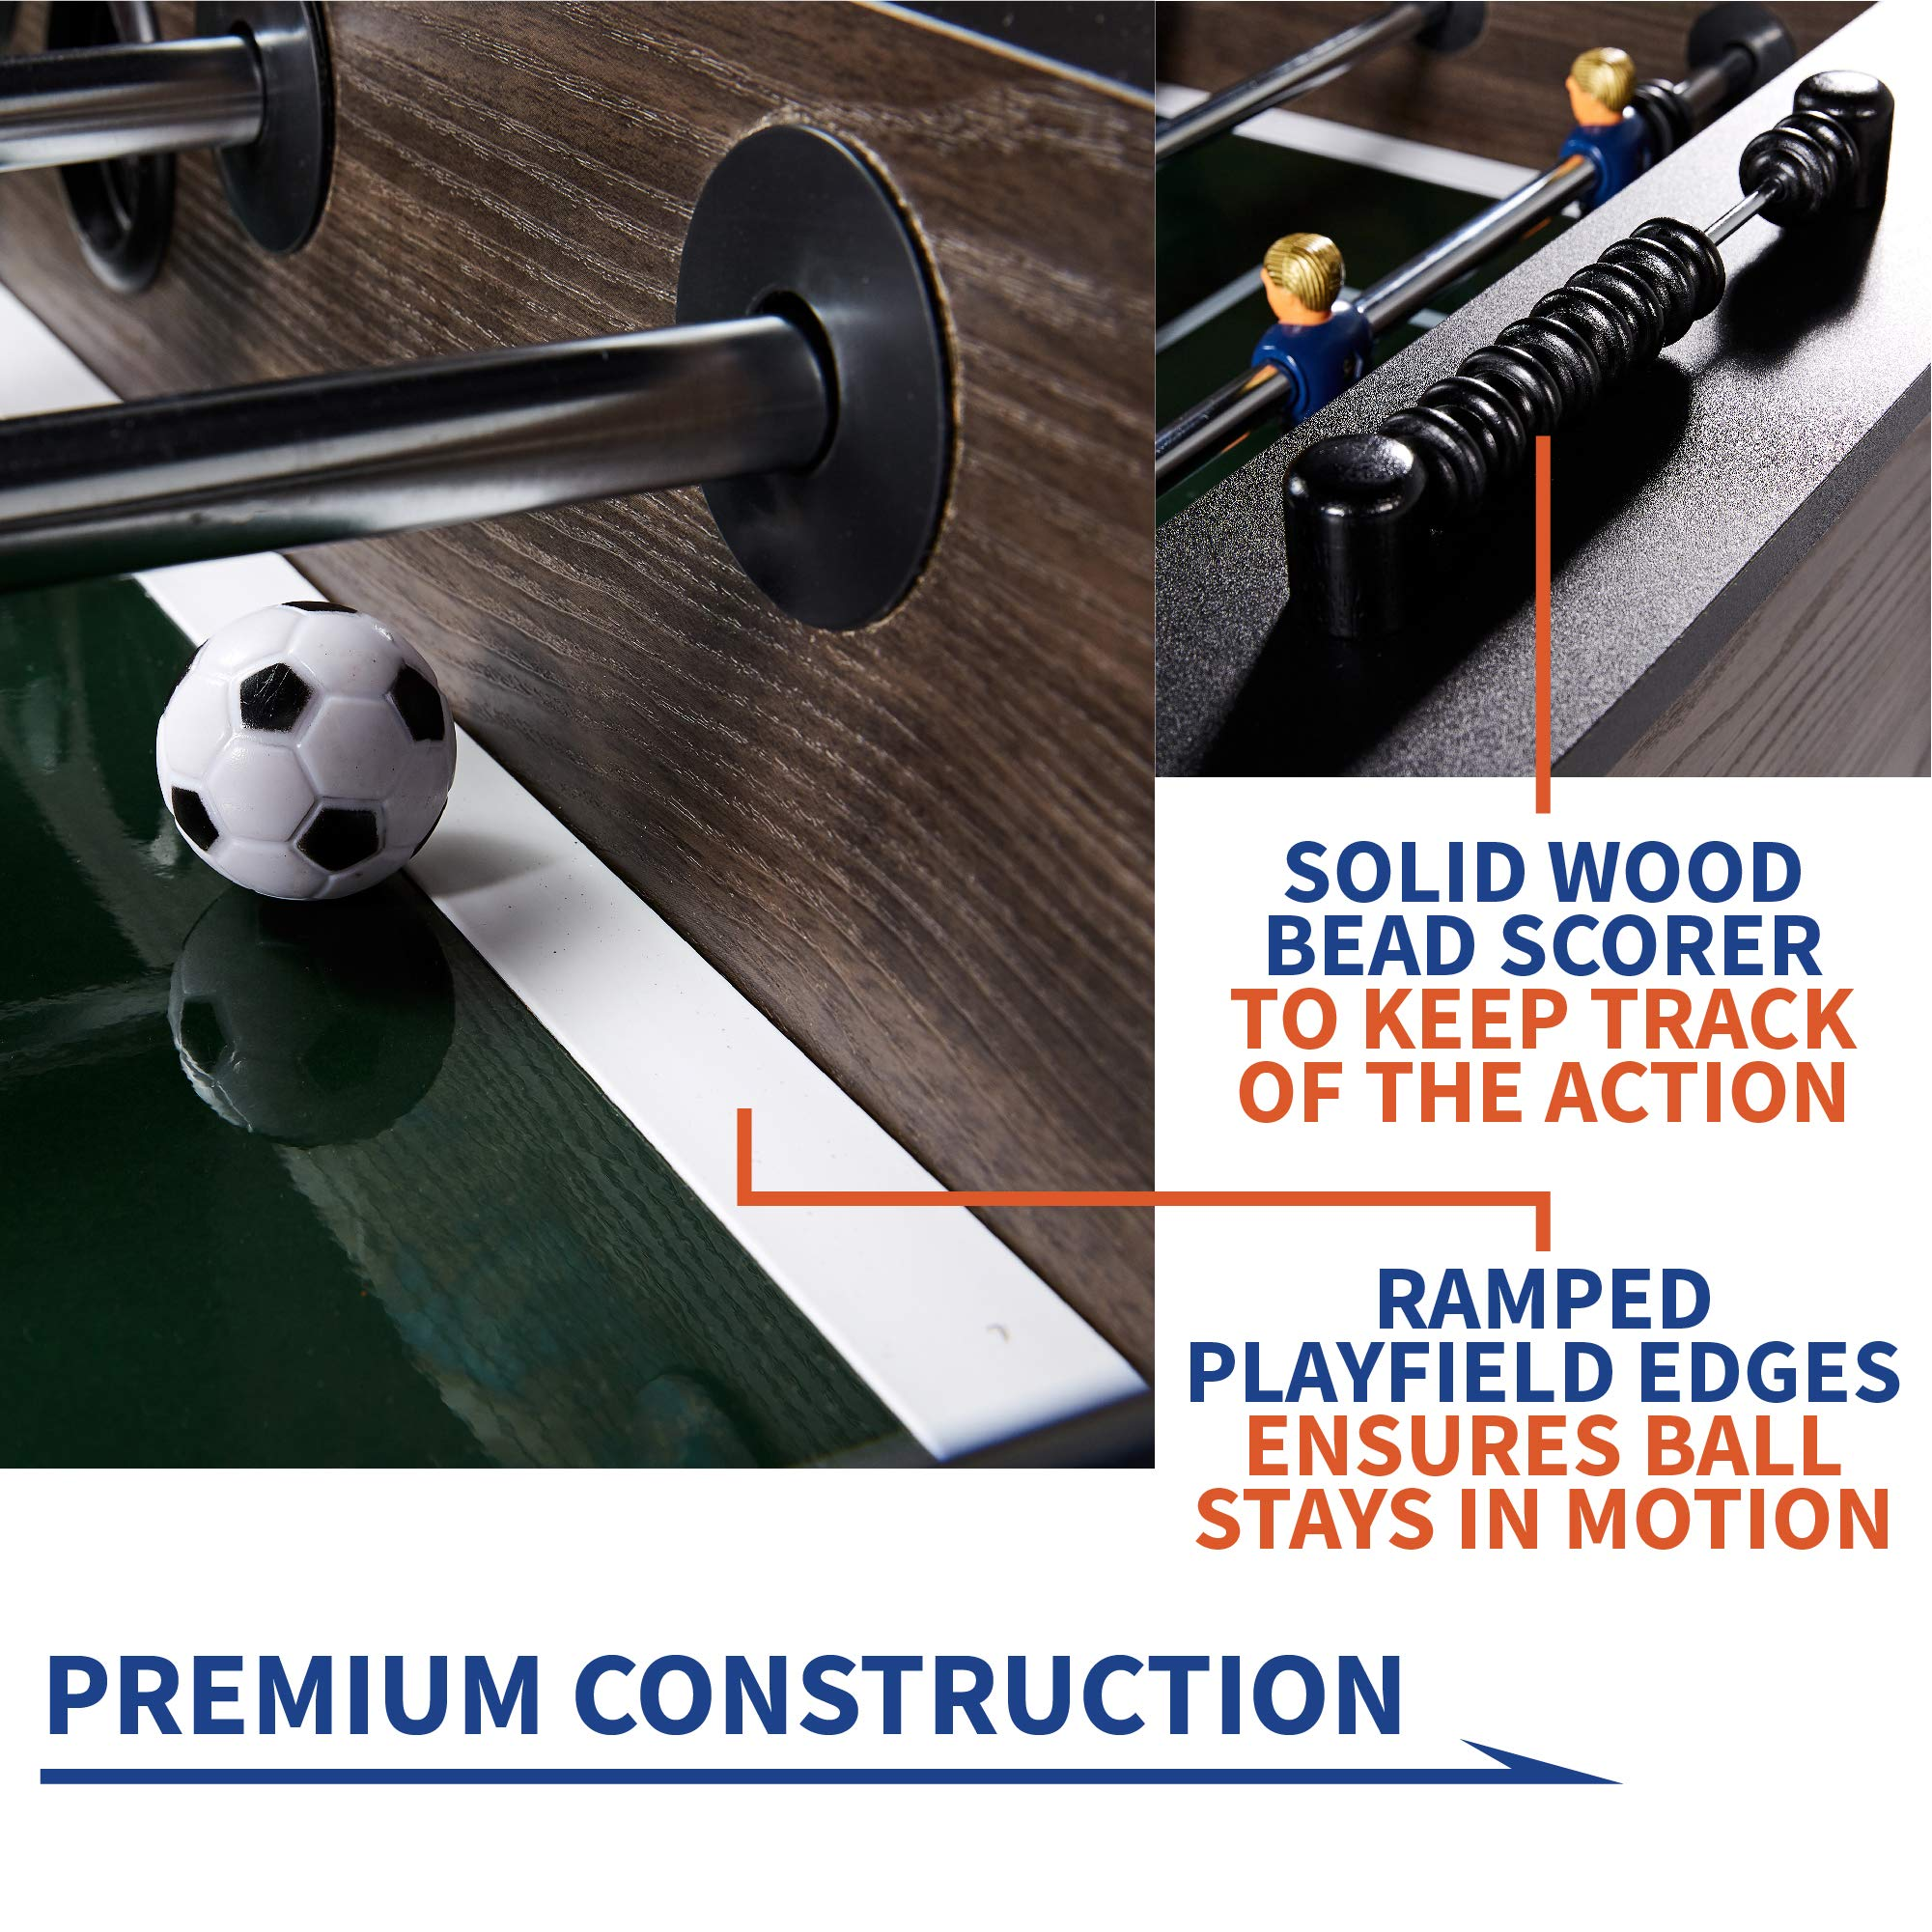 """Rally and Roar Foosball Table Game – 56"""" Standard Size Fun, Multi Person Table Soccer Adults, Kids - Recreational Foosball Games Game Rooms, Arcades, Bars, Parties, Family Night by Rally and Roar (Image #4)"""